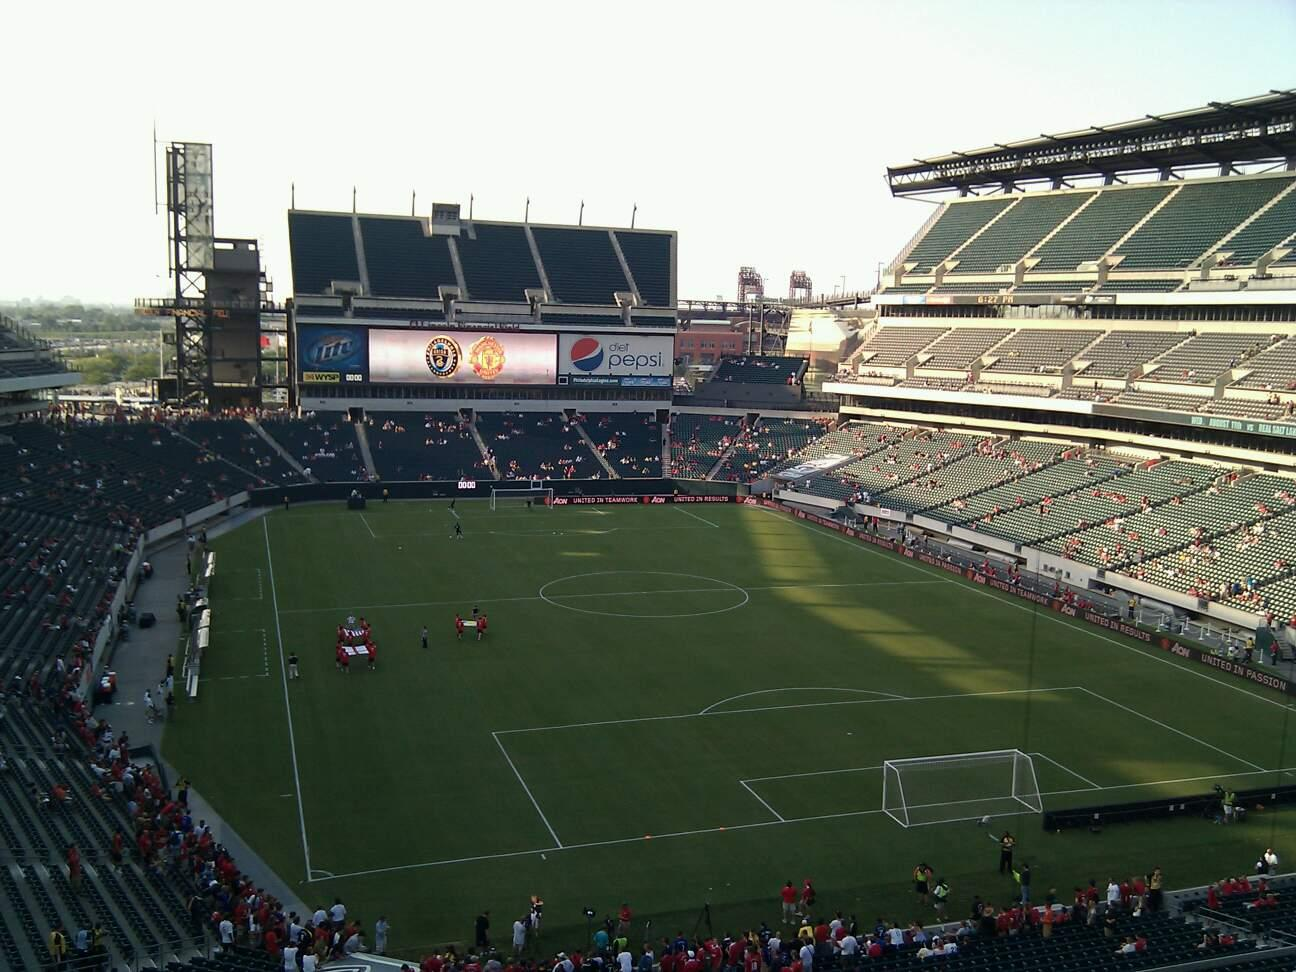 Lincoln Financial Field Section M9 Row 16 Seat 5